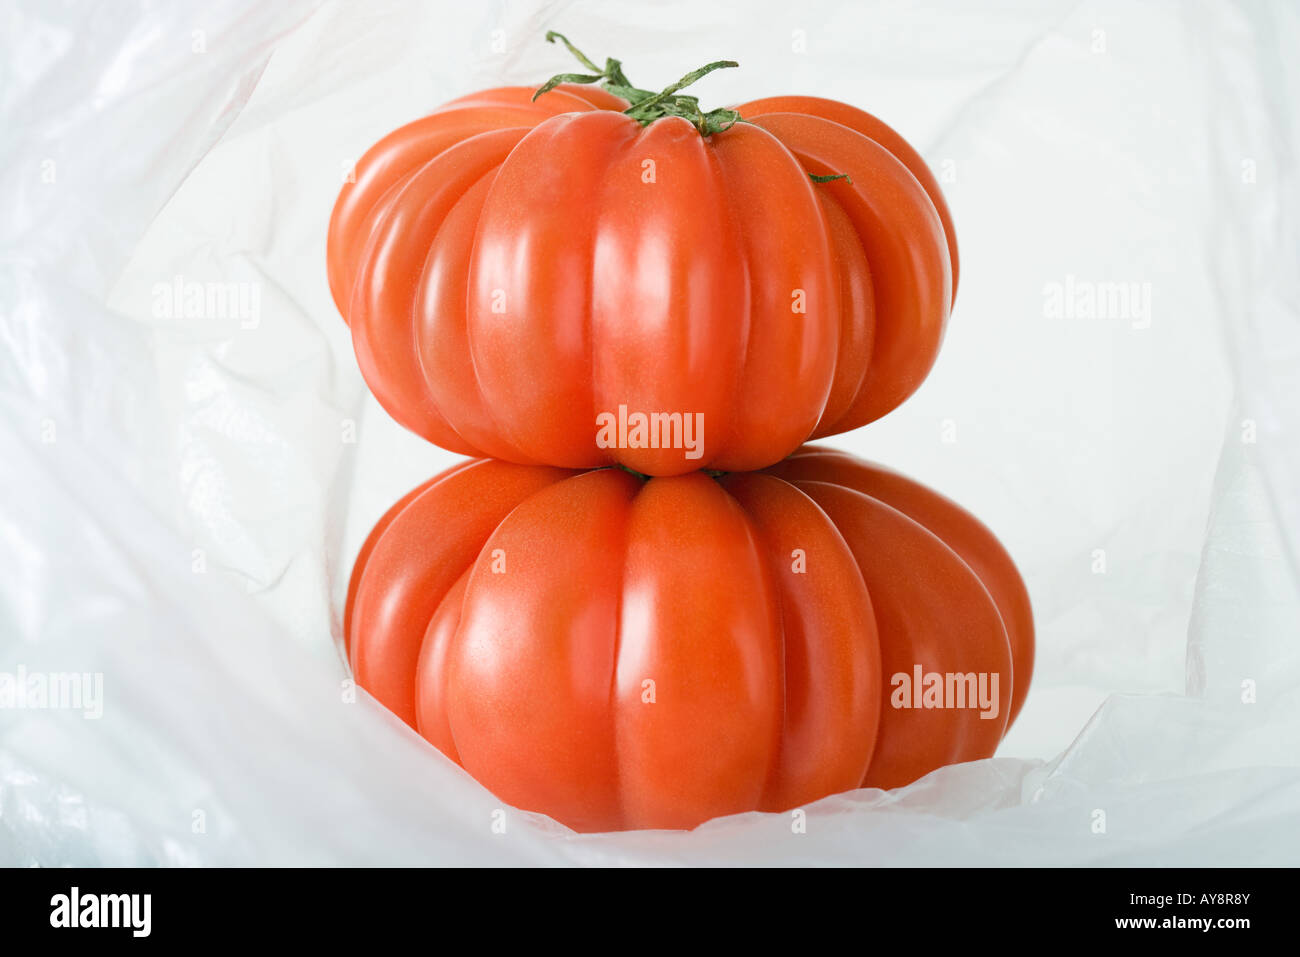 Ripe heirloom tomatoes stacked inside plastic bag, close-up - Stock Image